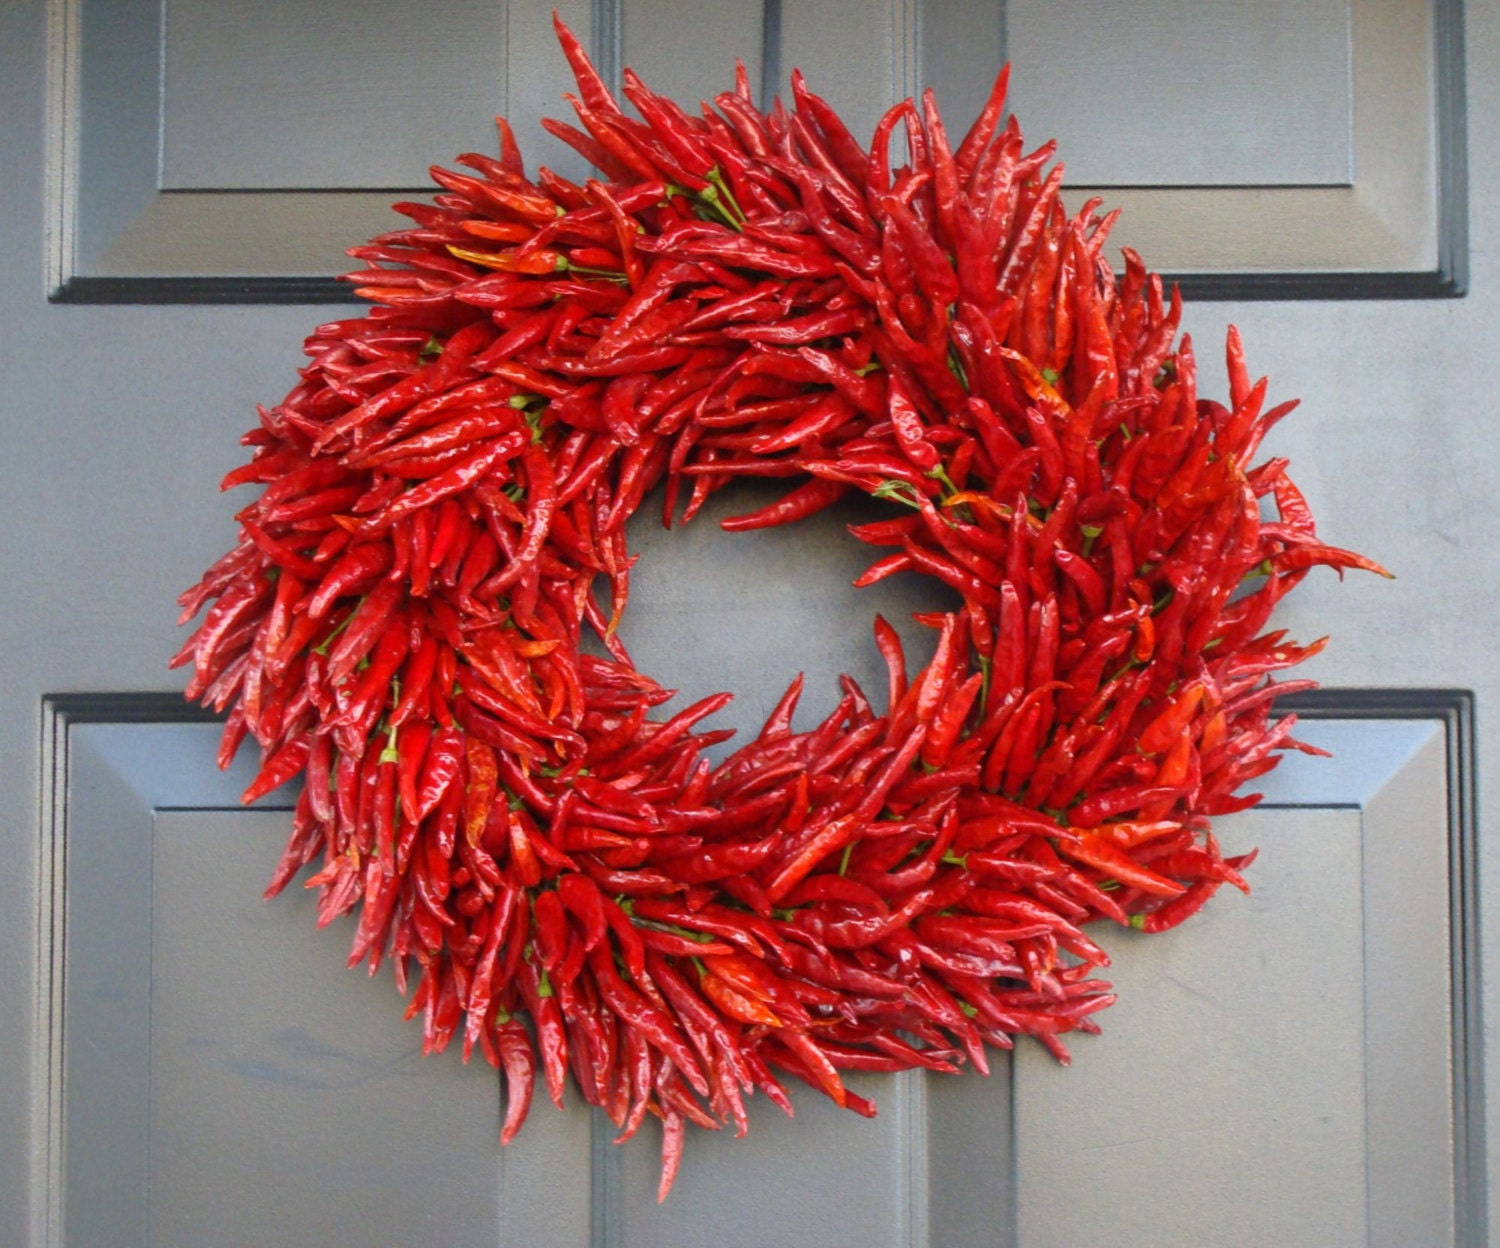 organic red chili pepper wreath kitchen wreath centerpiece wall decor housewarming gift - Southwestern Decor